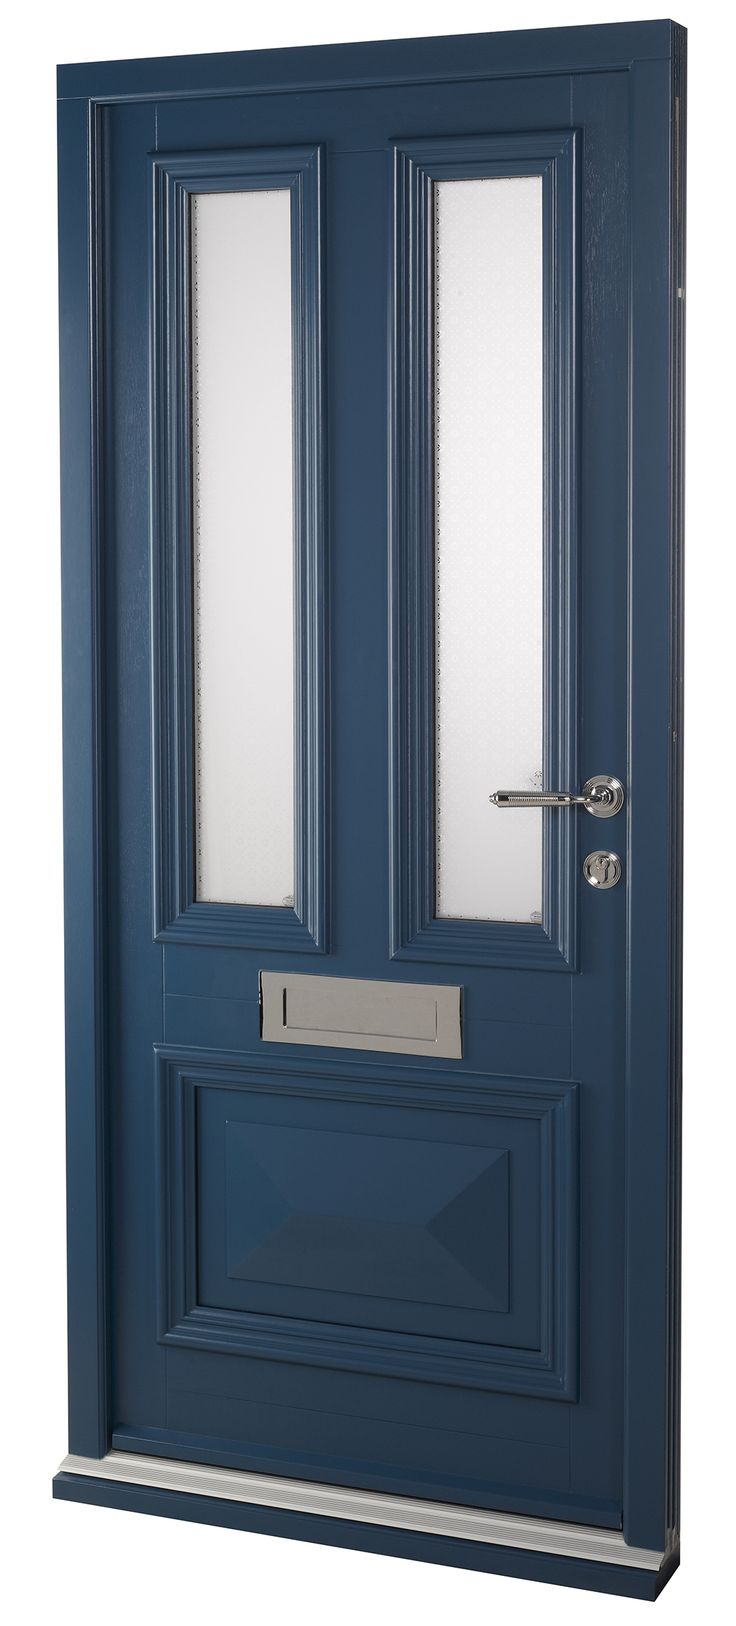 Find our conservation doors in our new brochure!